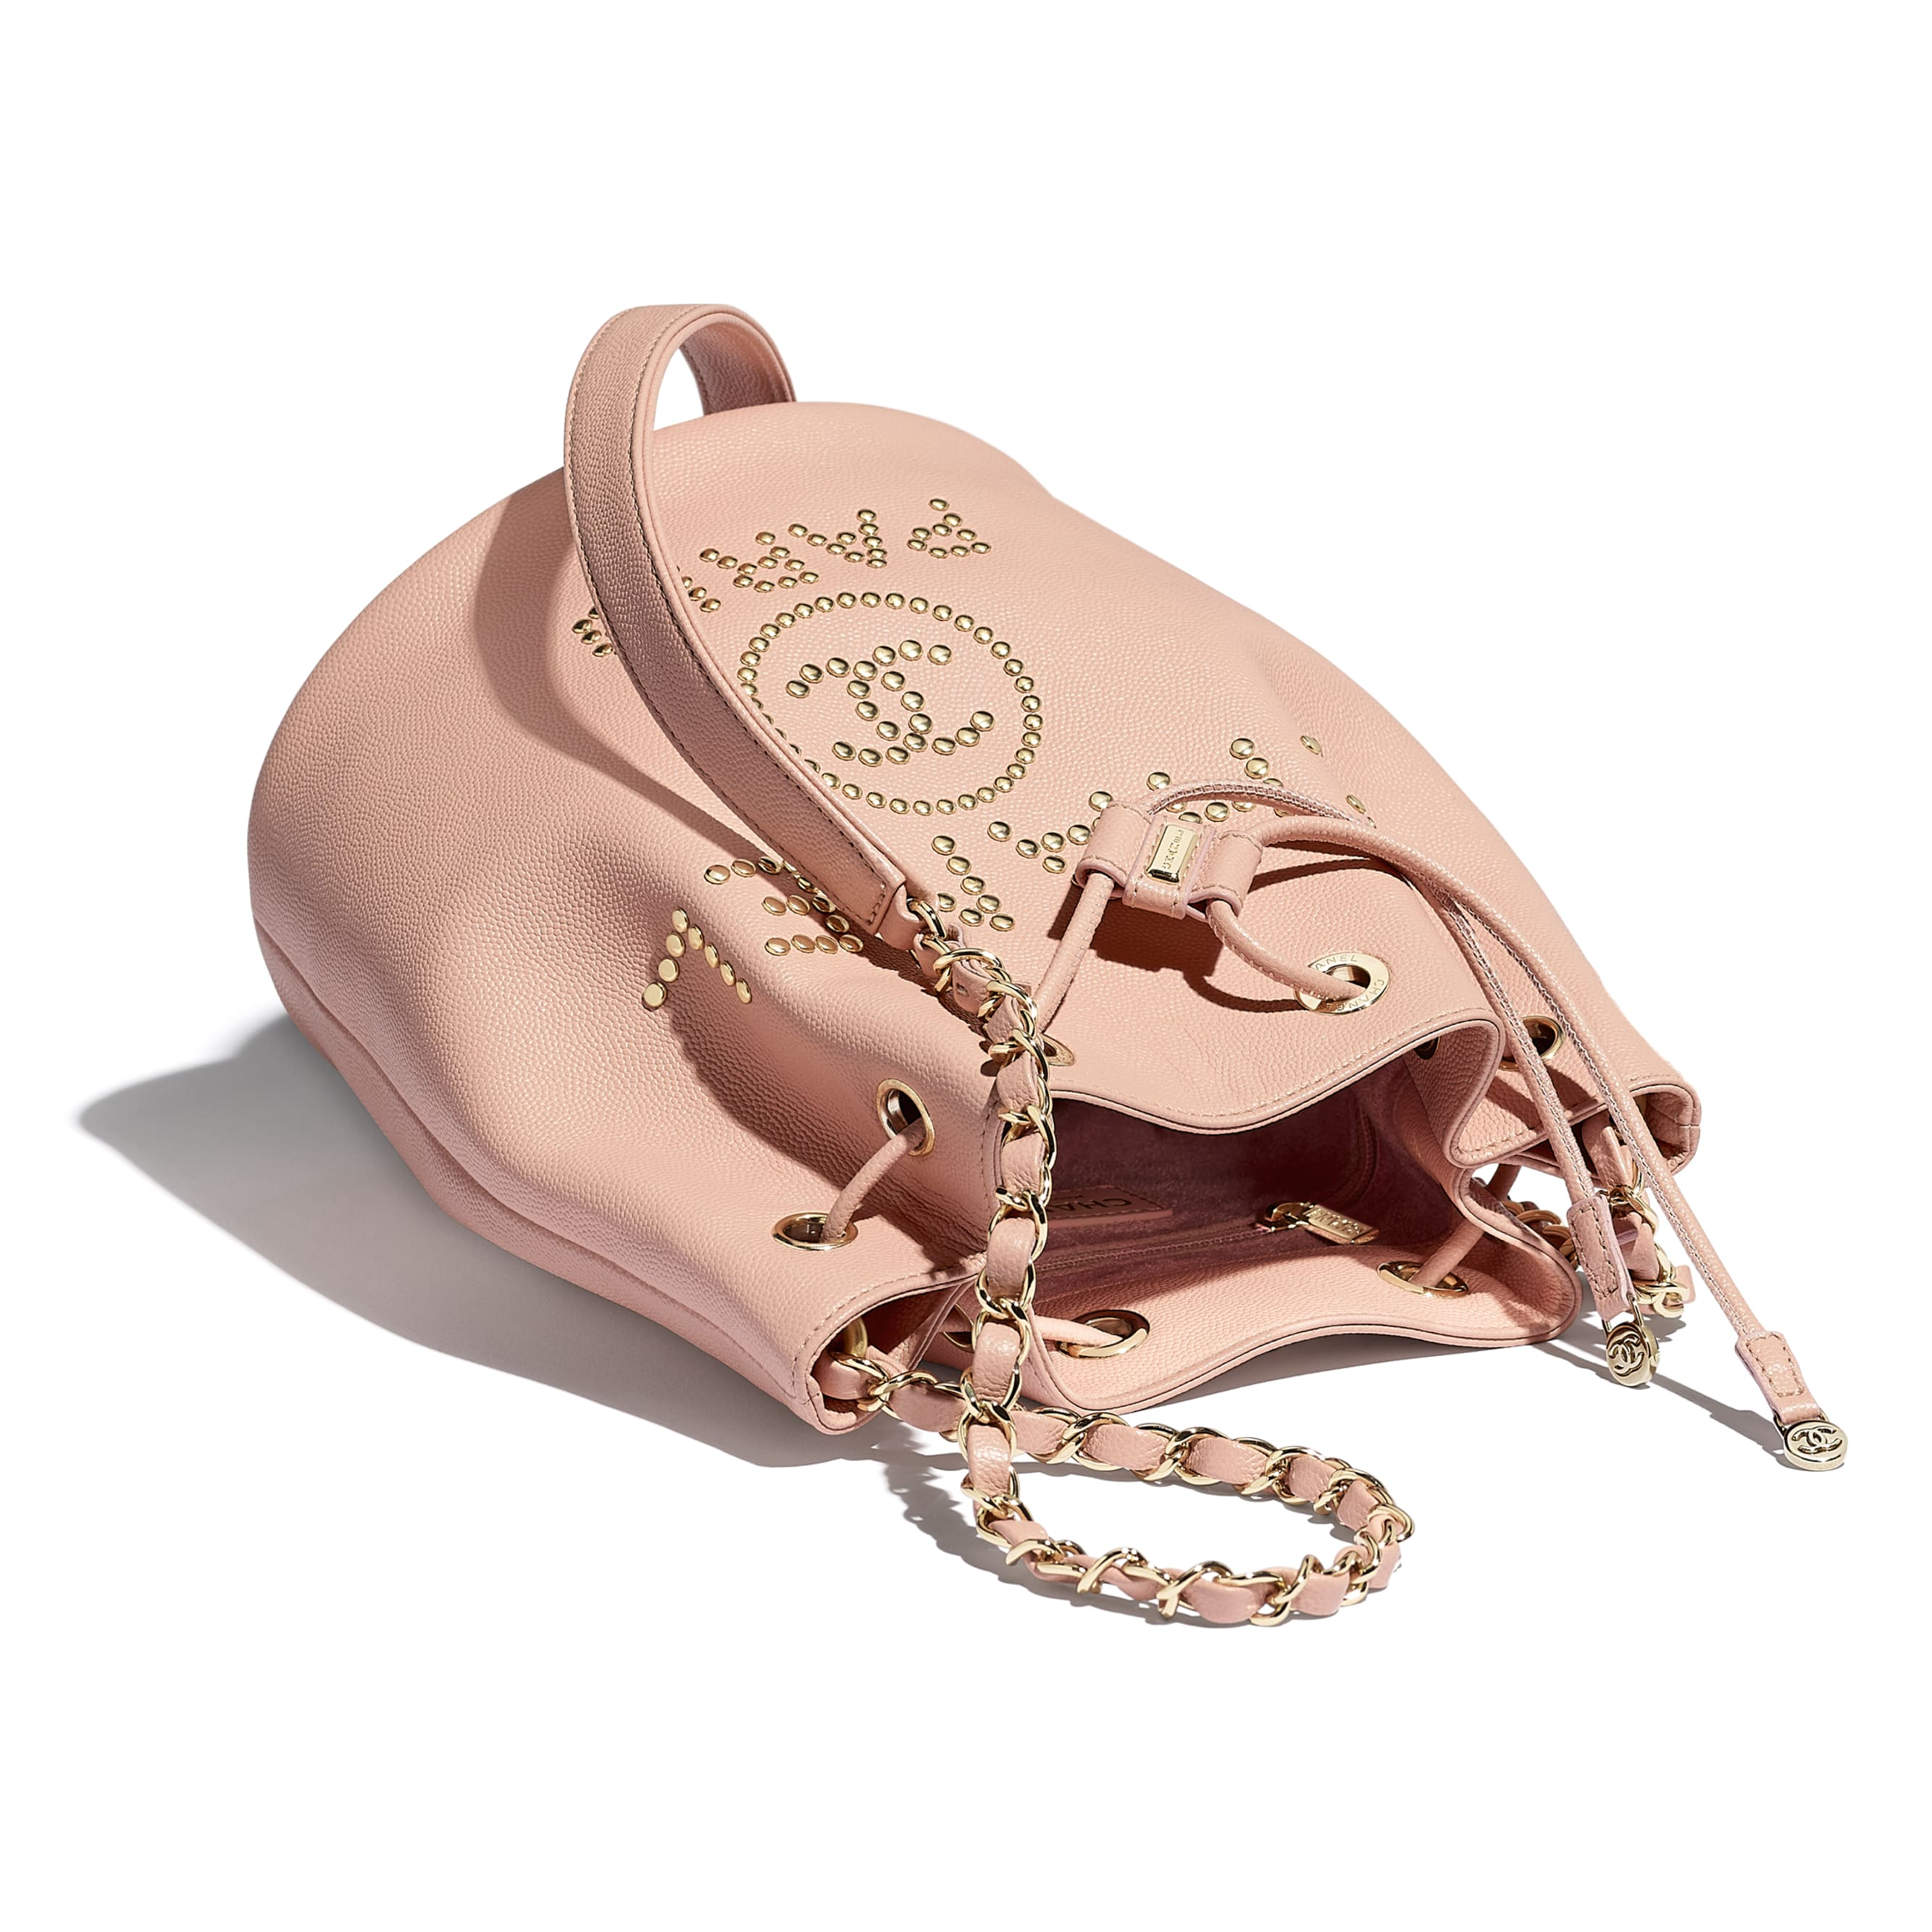 Small Drawstring Bag - Light Pink - Grained Calfskin, Studs & Gold-Tone Metal - CHANEL - Other view - see standard sized version